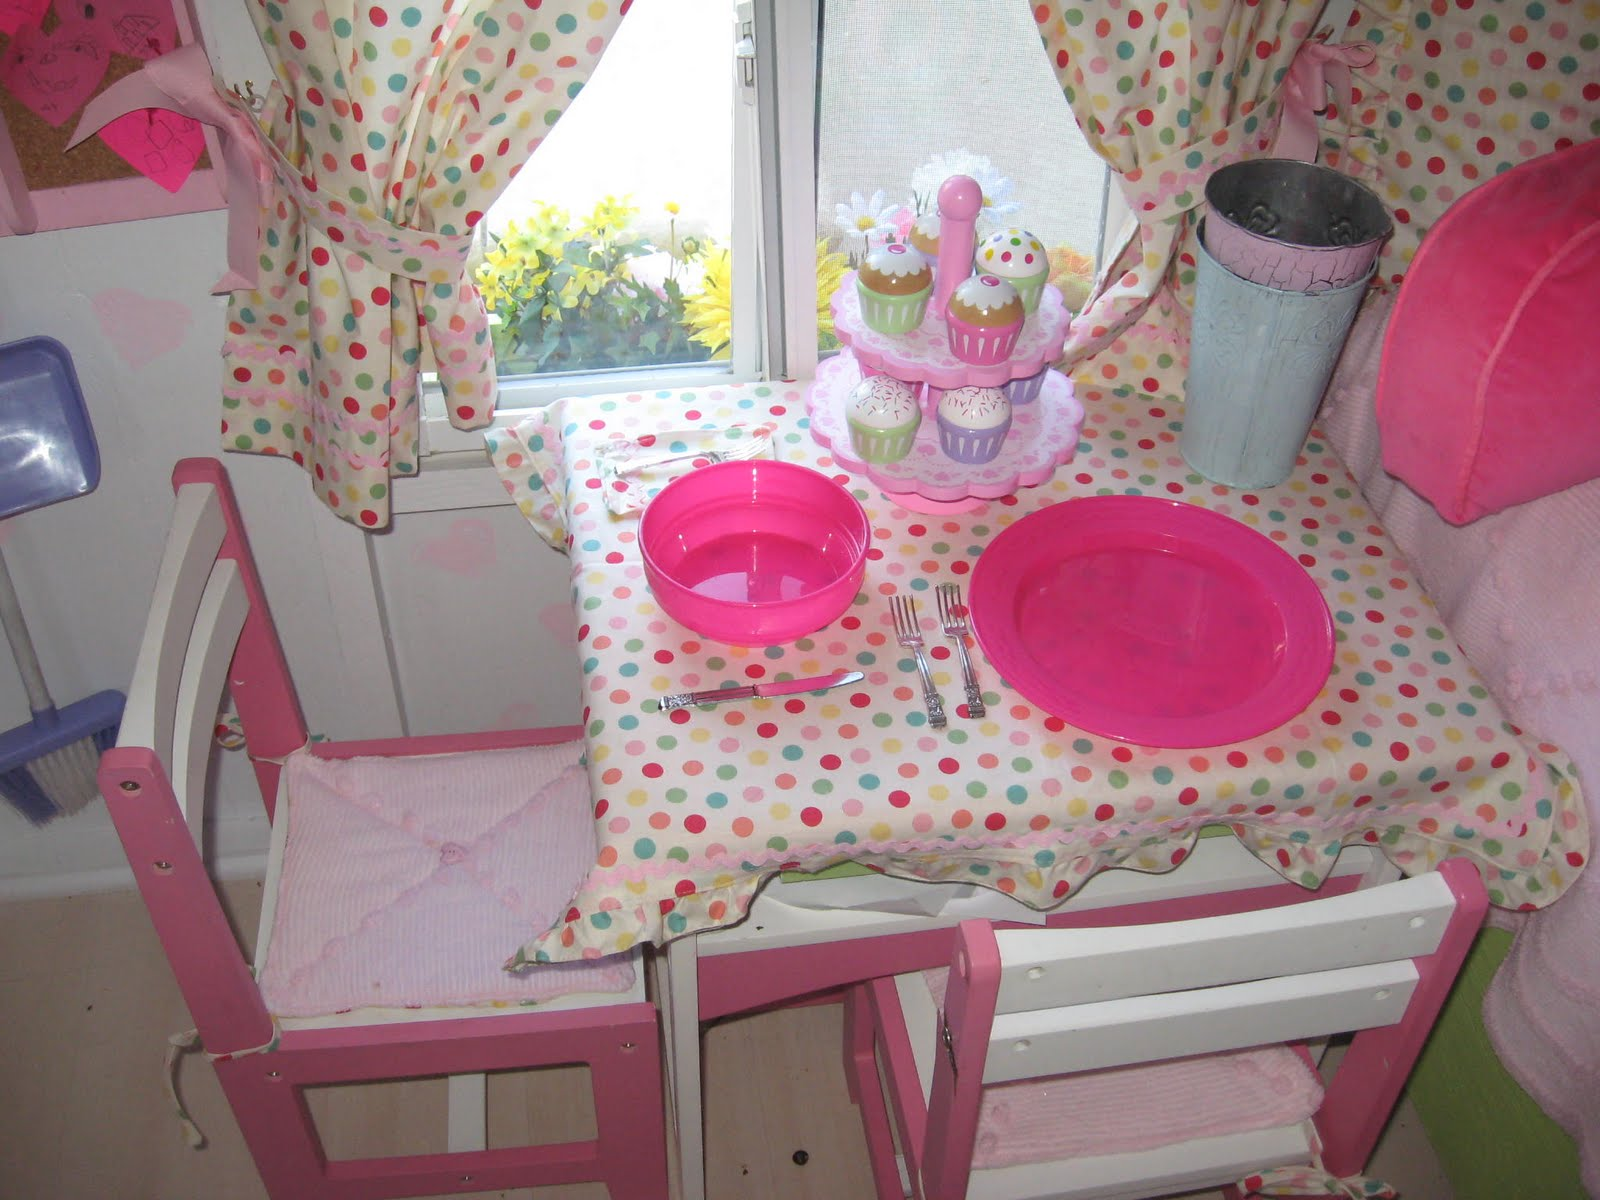 Kids Room Designs 2014: Kitchen Ideas Playhouse